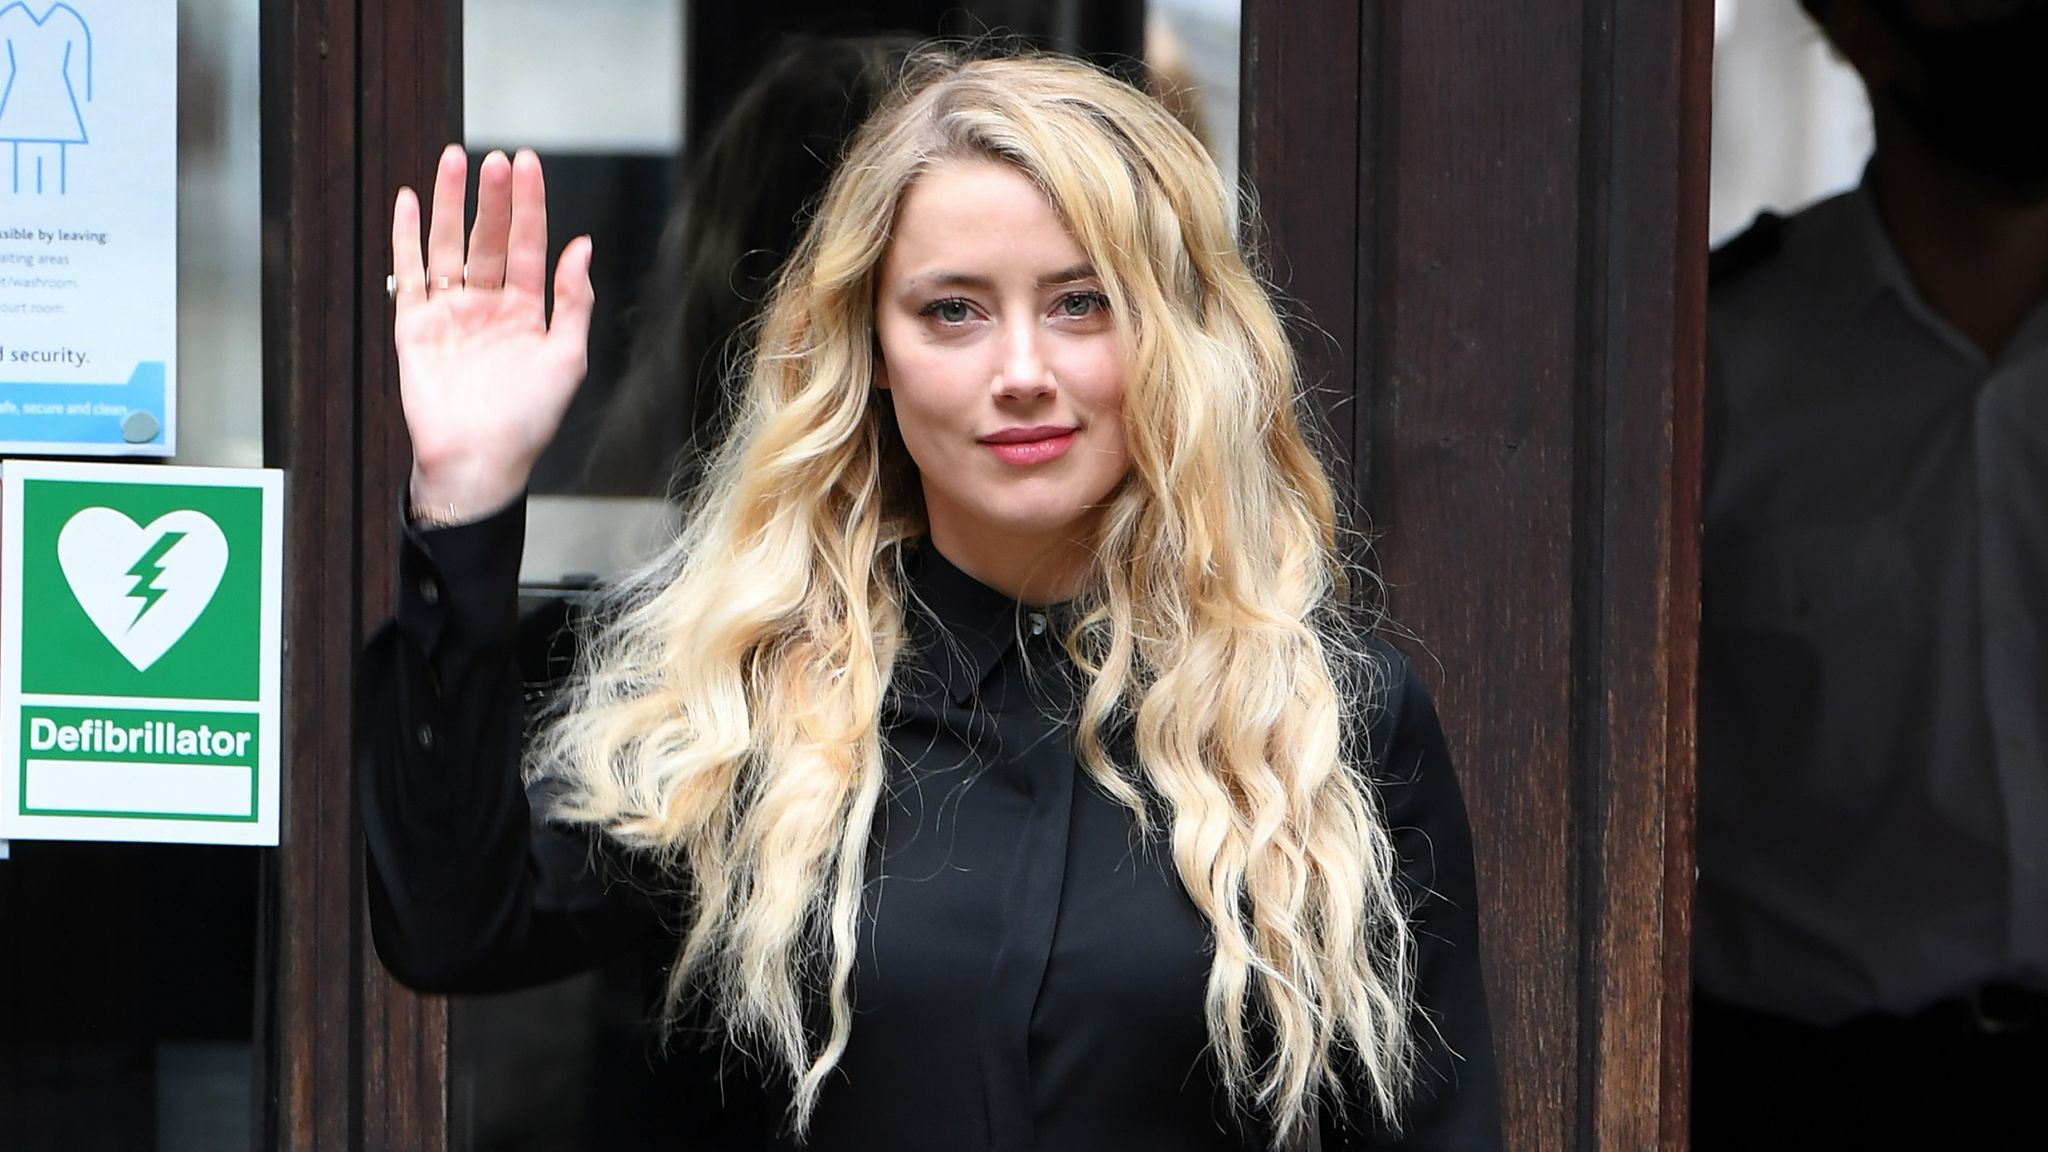 """LONDON, ENGLAND - JULY 28: Amber Heard arrives at the Royal Courts of Justice, the Strand on July 28, 2020 in London, England. The Hollywood actor Johnny Depp is suing News Group Newspapers (NGN) and the Sun's executive editor, Dan Wootton, over an article published in 2018 that referred to him as a """"wife beater"""" during his marriage to actor Amber Heard. (Photo by Stuart C. Wilson/Getty Images)"""